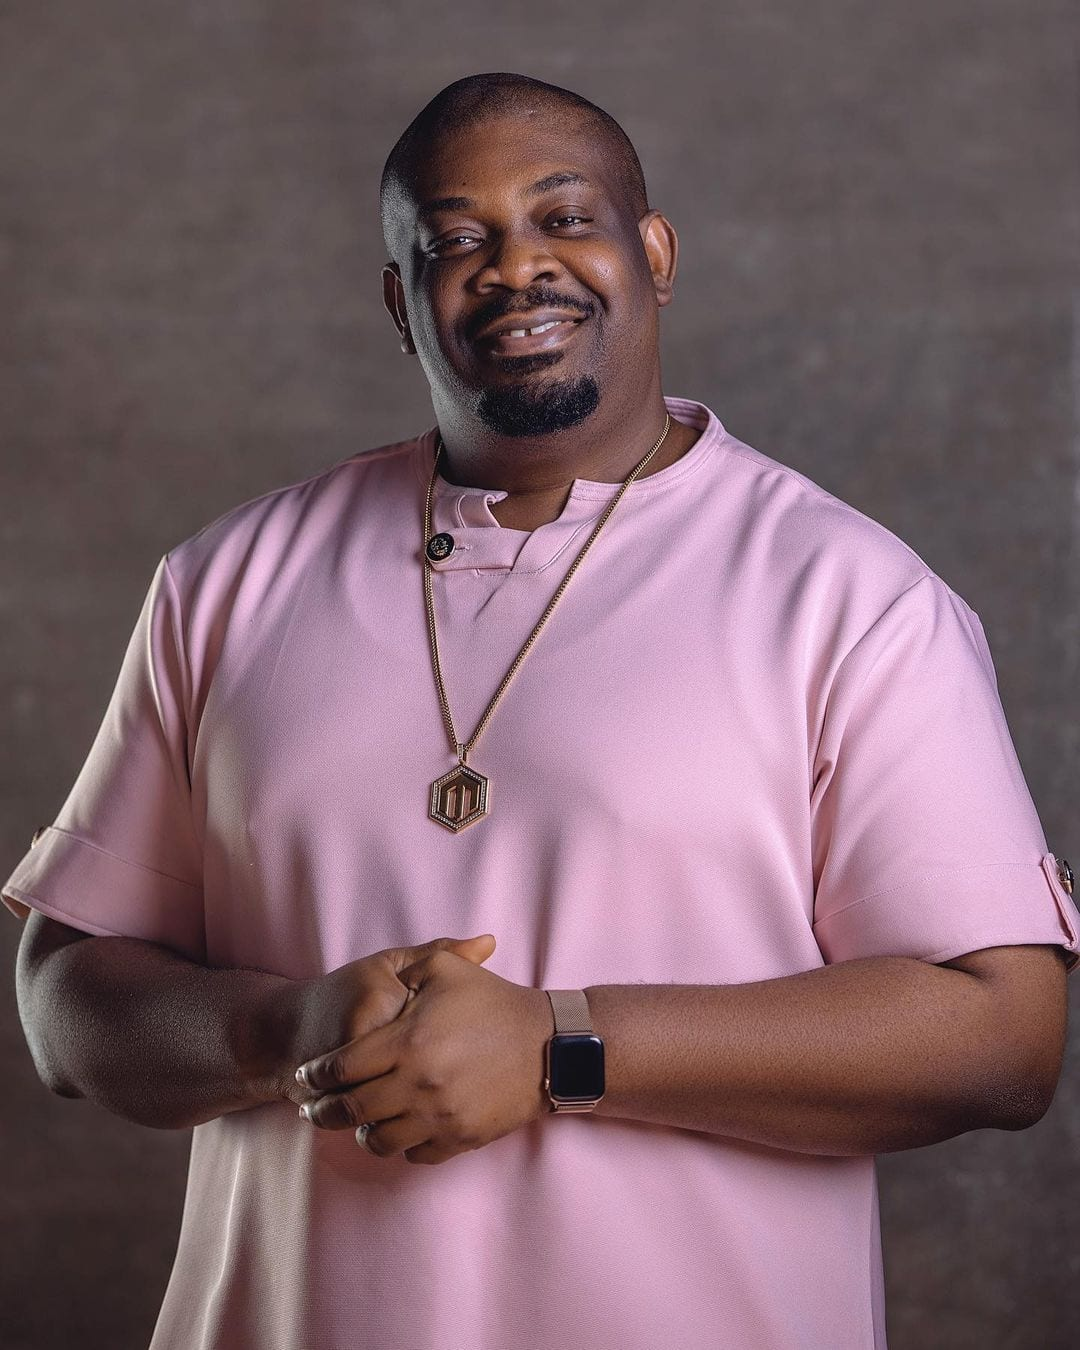 Don Jazzy Gives Reason Why He Cannot Stay With One Woman In Interview